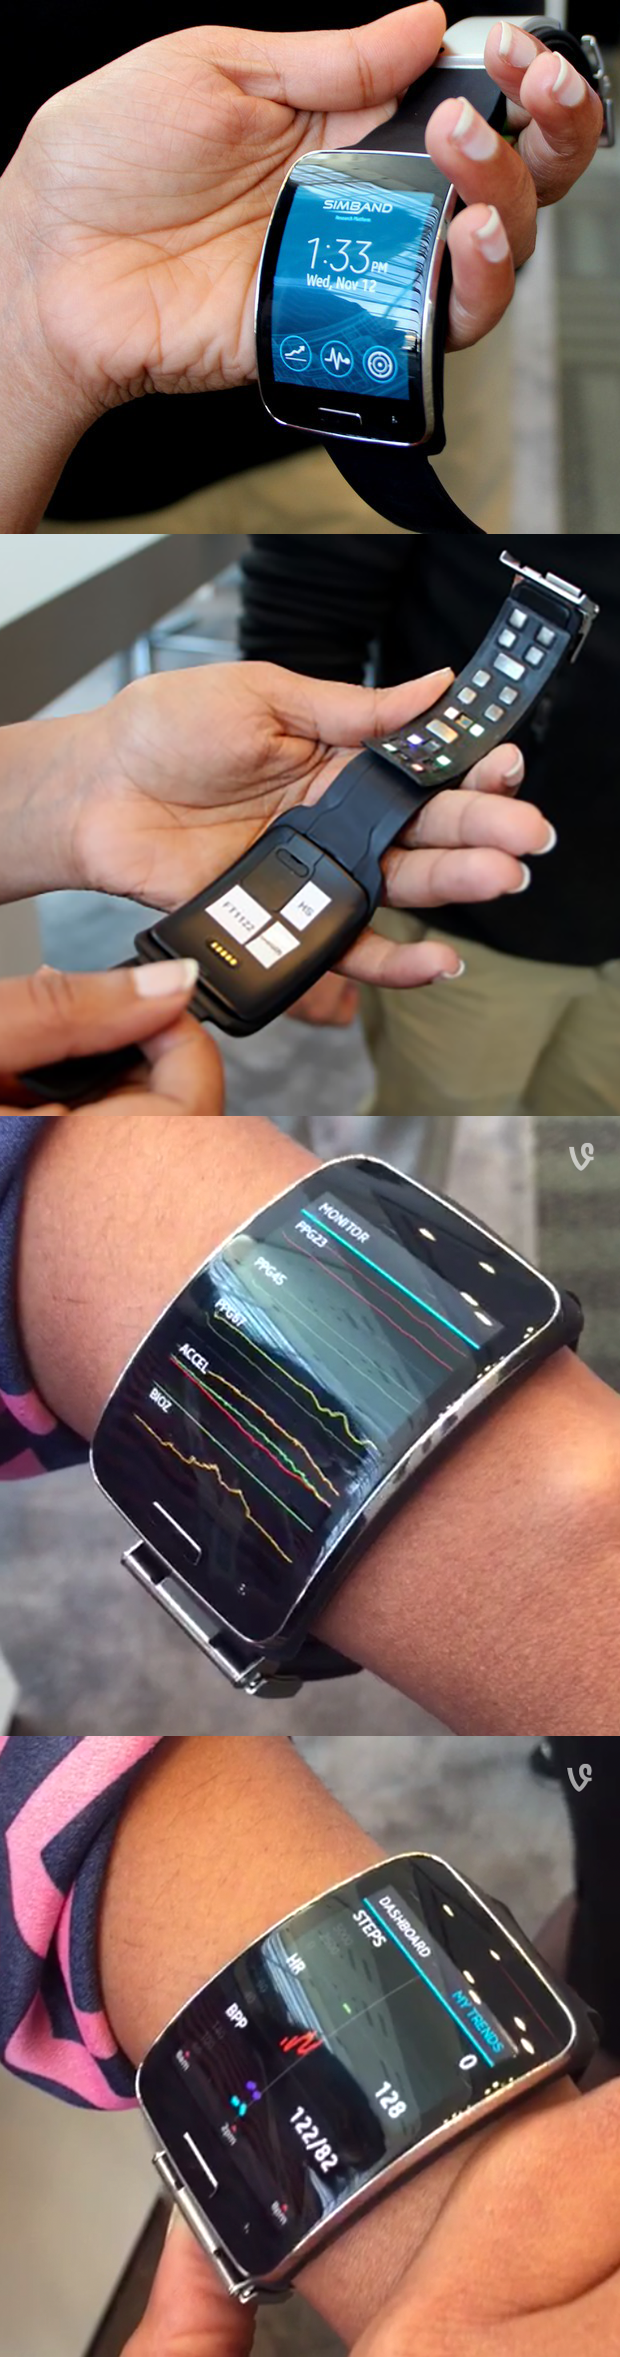 The Simband, created by Samsung is intended to be used by those within the medical industry — startups and medical researchers alike to develop new applications for sensor technology